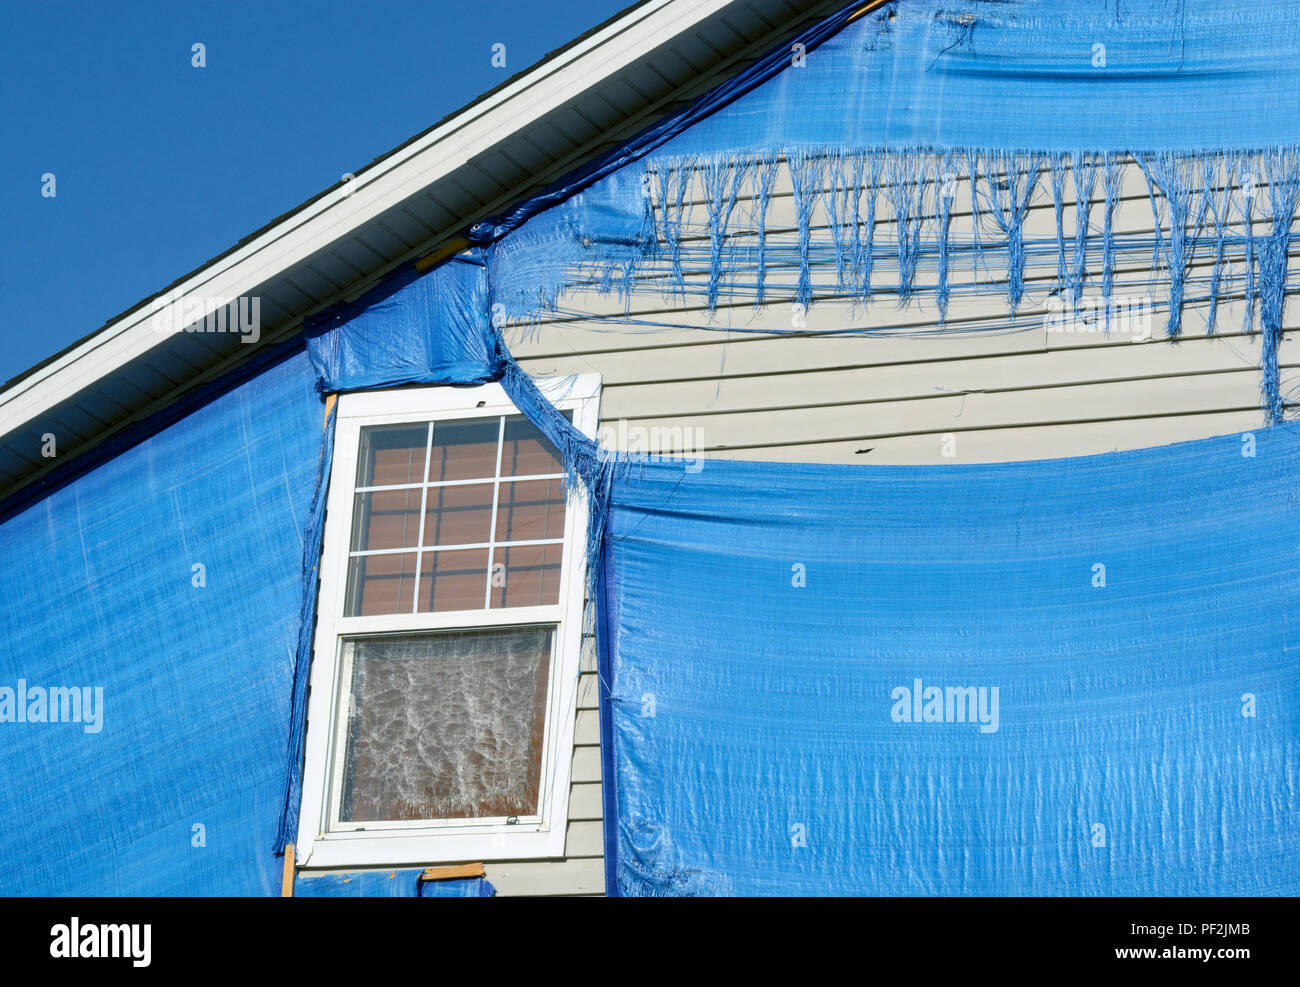 Detail of hail storm damaged home protected by blue tarp weathered and shredded by subsequent storms, sun and wind - Stock Image